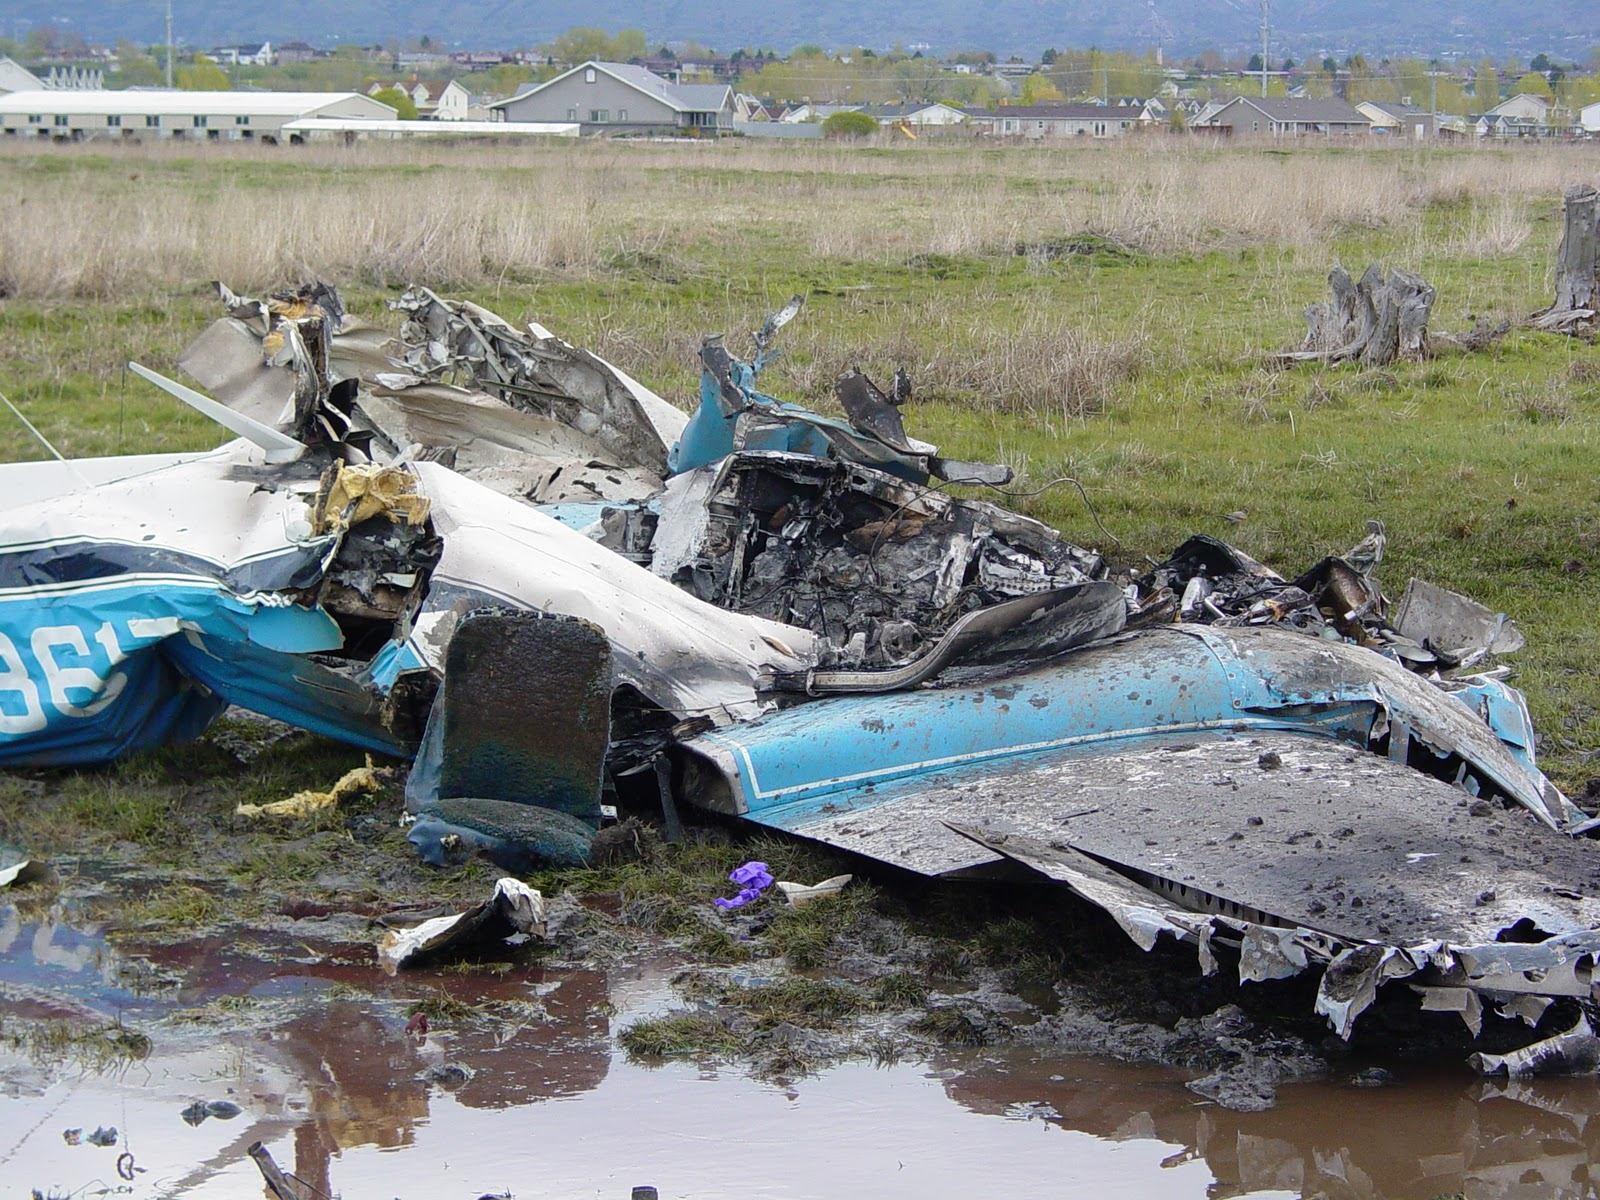 Plane Crash Bodies Photos Plane crash reno air races